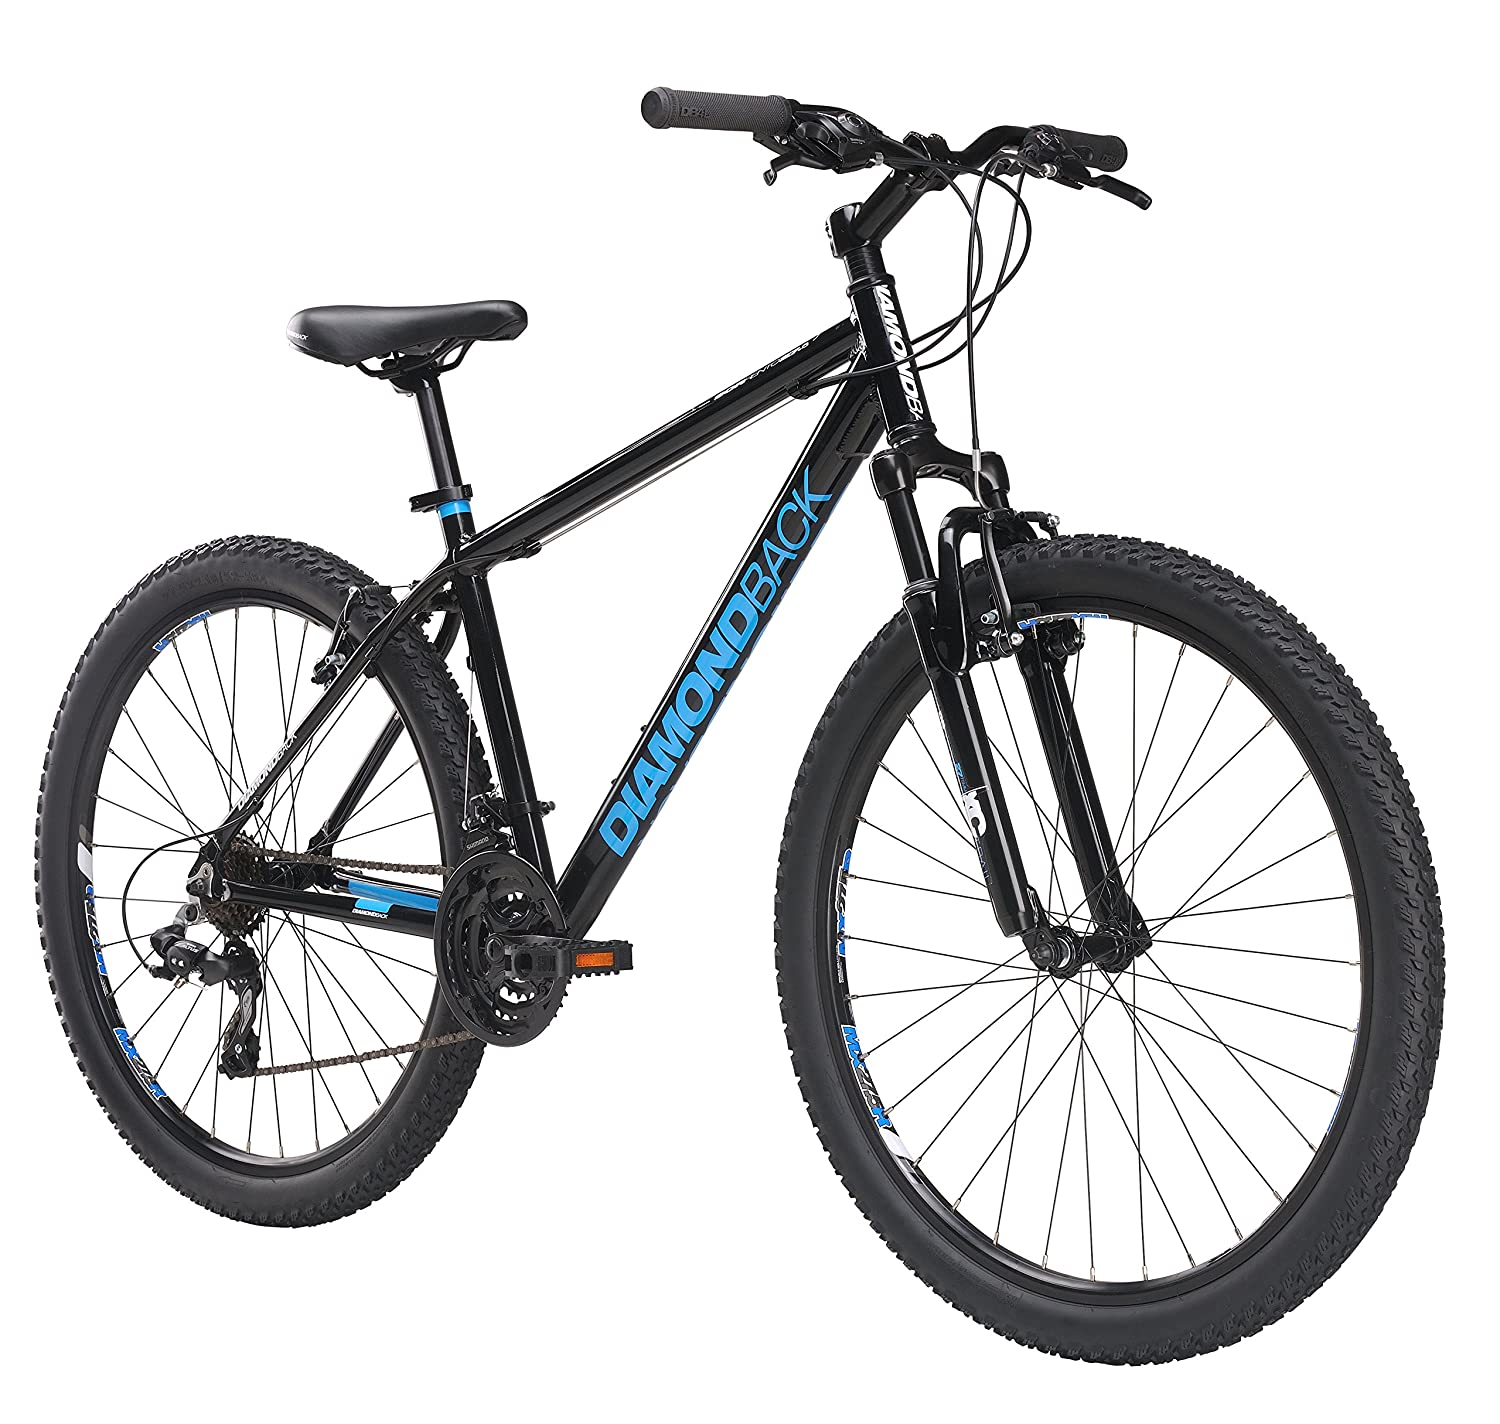 Diamondback Bicycles 2015 Sorrento Hard Tail Complete Mountain Bike review 1